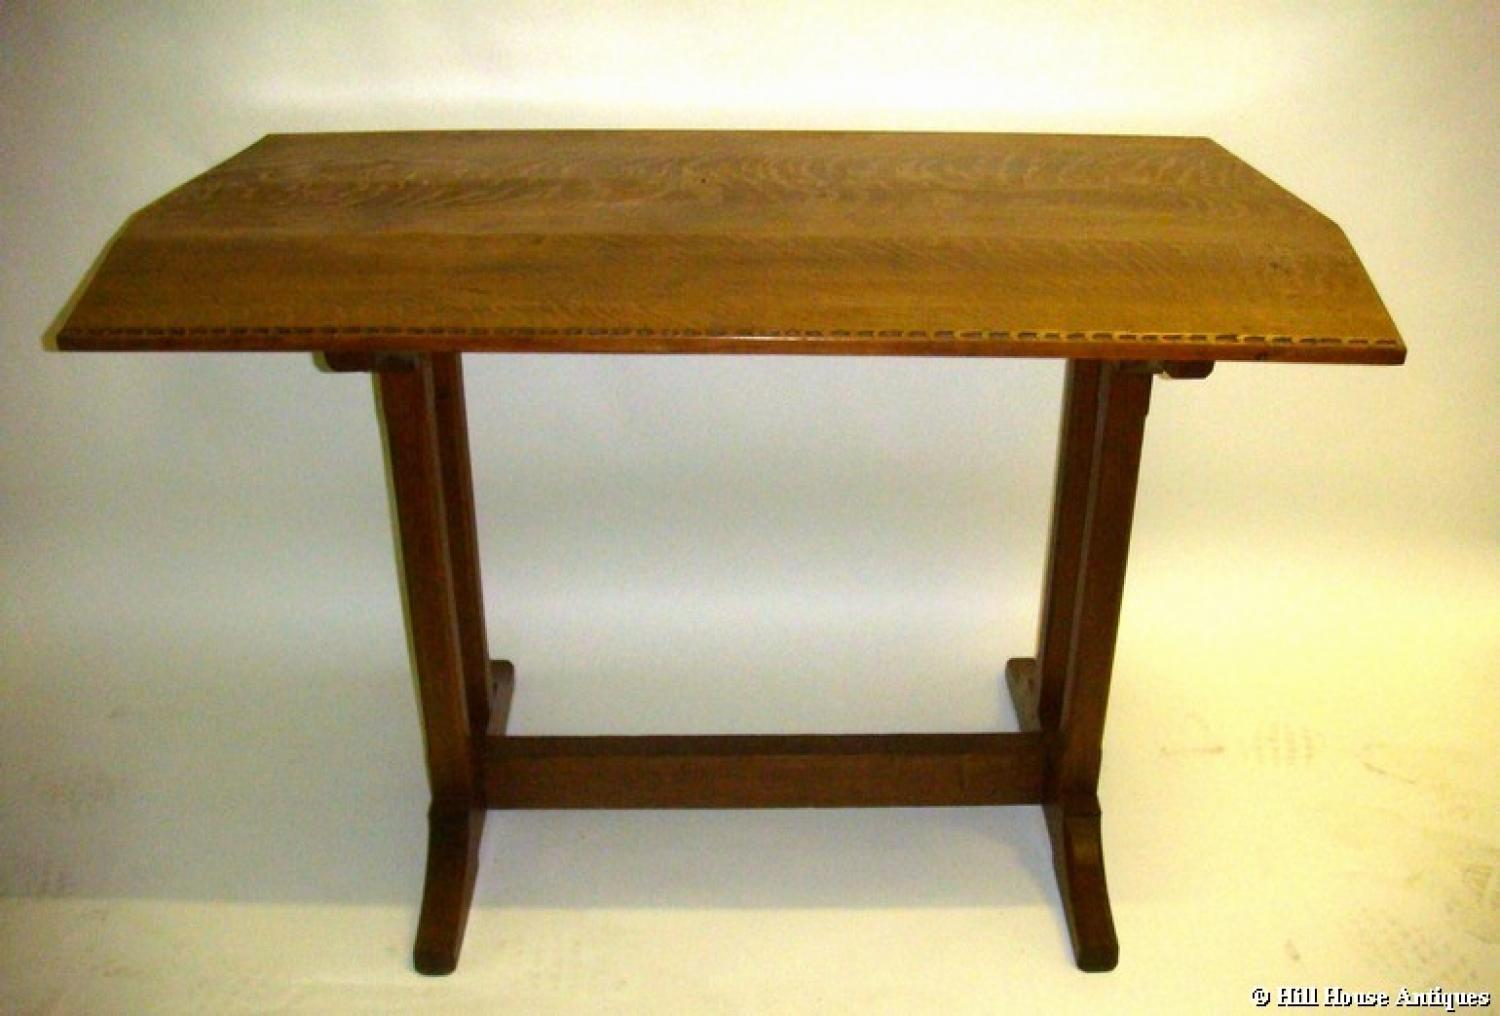 Cotswold School oak table